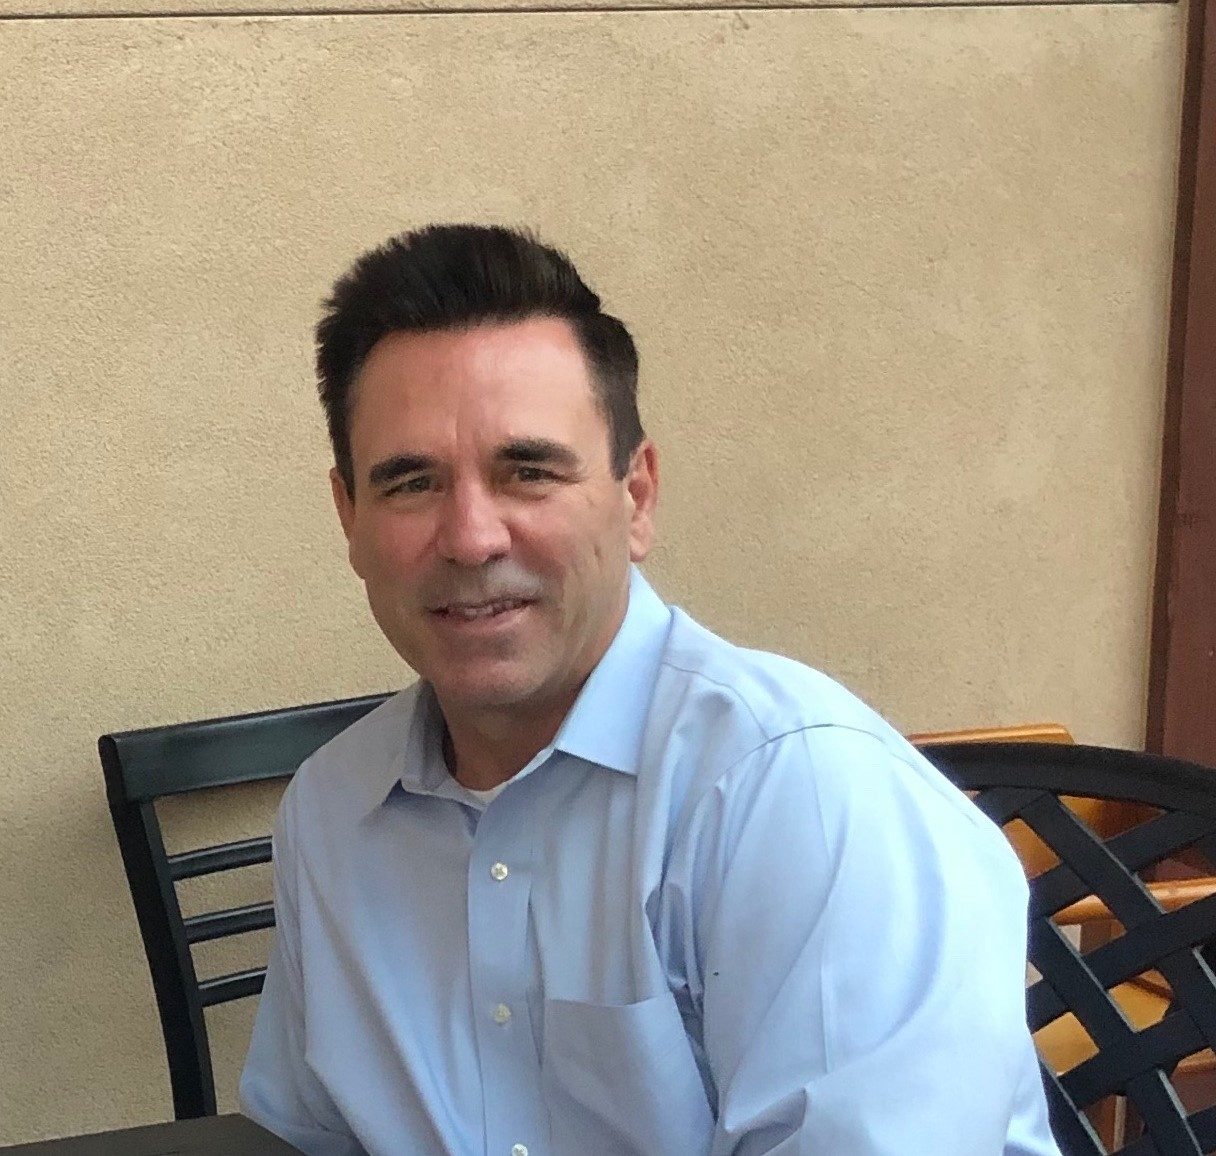 Jim Gassman joins Summit Fire Consulting